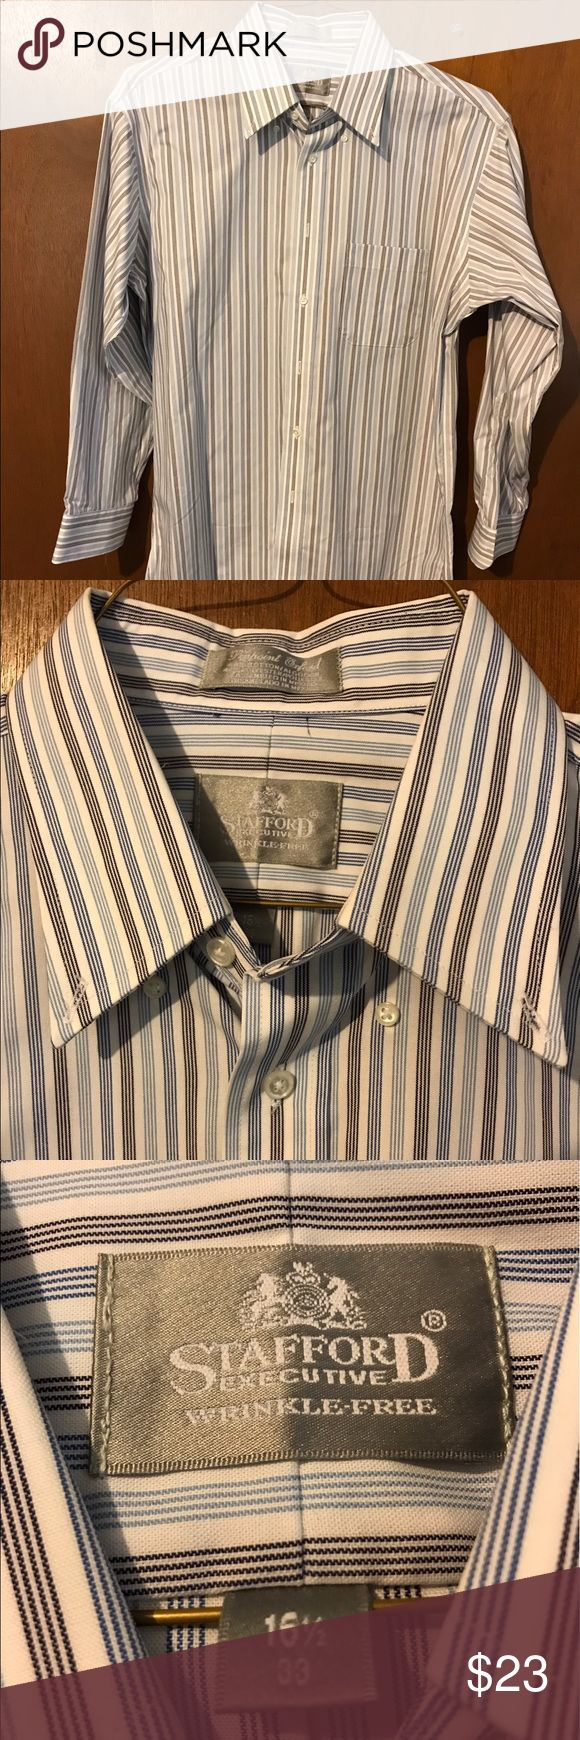 Stafford Dress Shirt NWOT-Stafford Wrinkle Free dress shirt. Brilliant blues and grays adorn this button up shirt. Perfect for the office or a night on the town. Stafford Shirts Dress Shirts